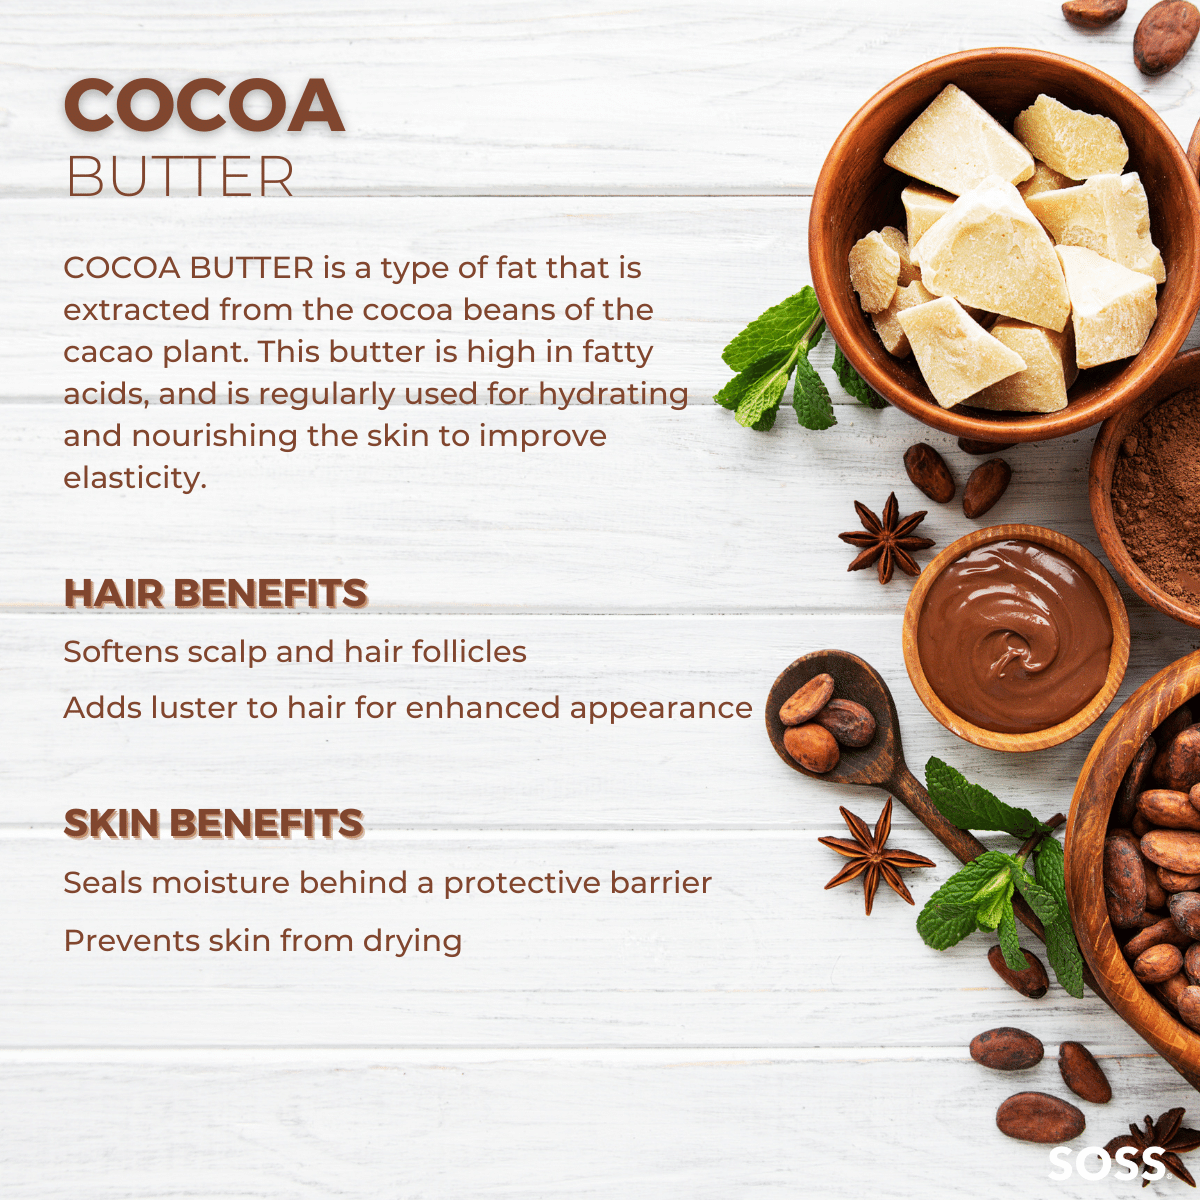 Cocoa Butter is a highly fatty substance that softens skin and hair.